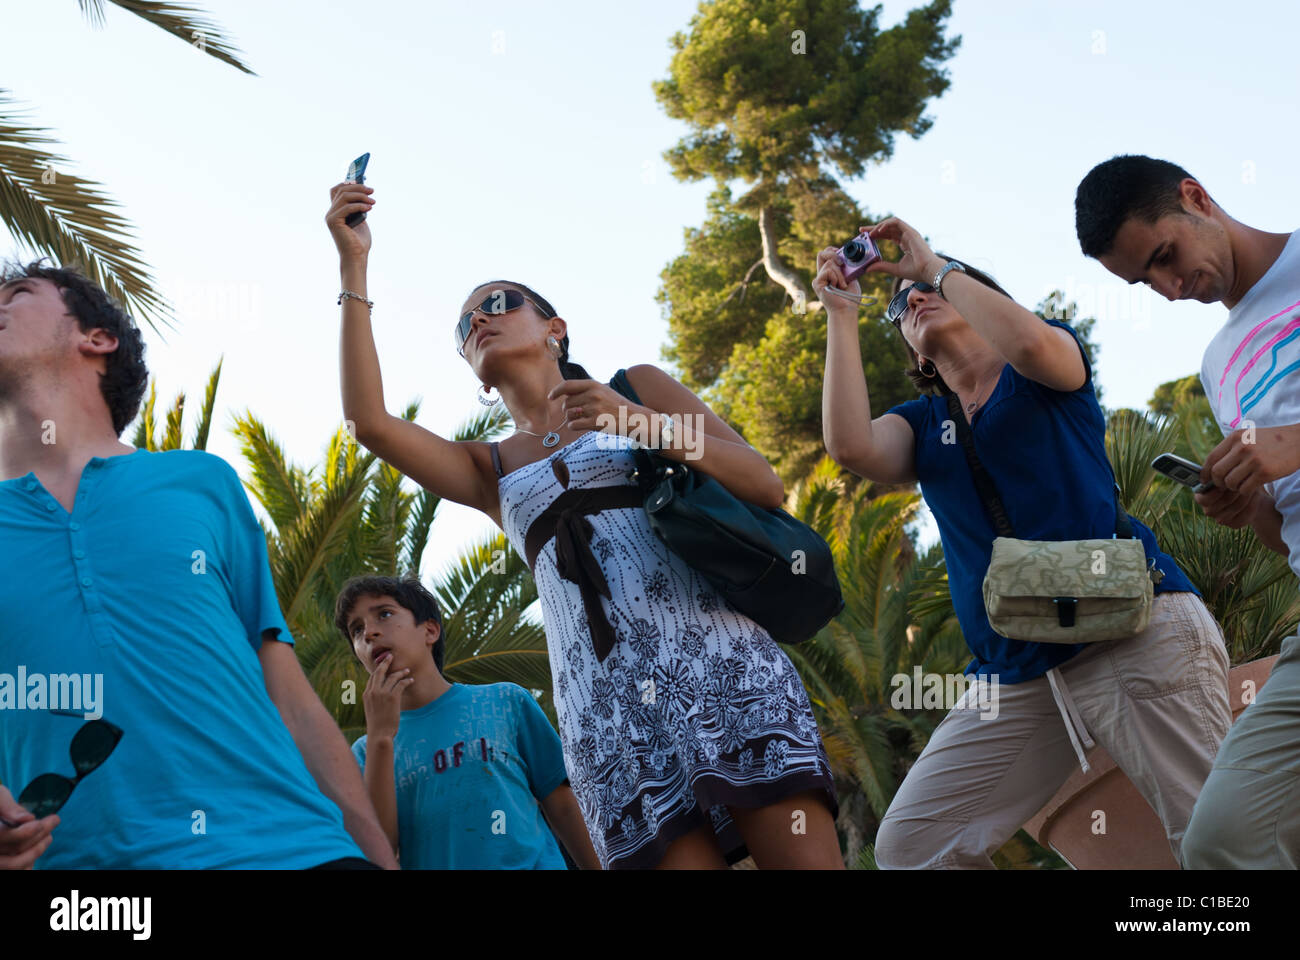 People photographing at Park Guell, Barcelona. - Stock Image